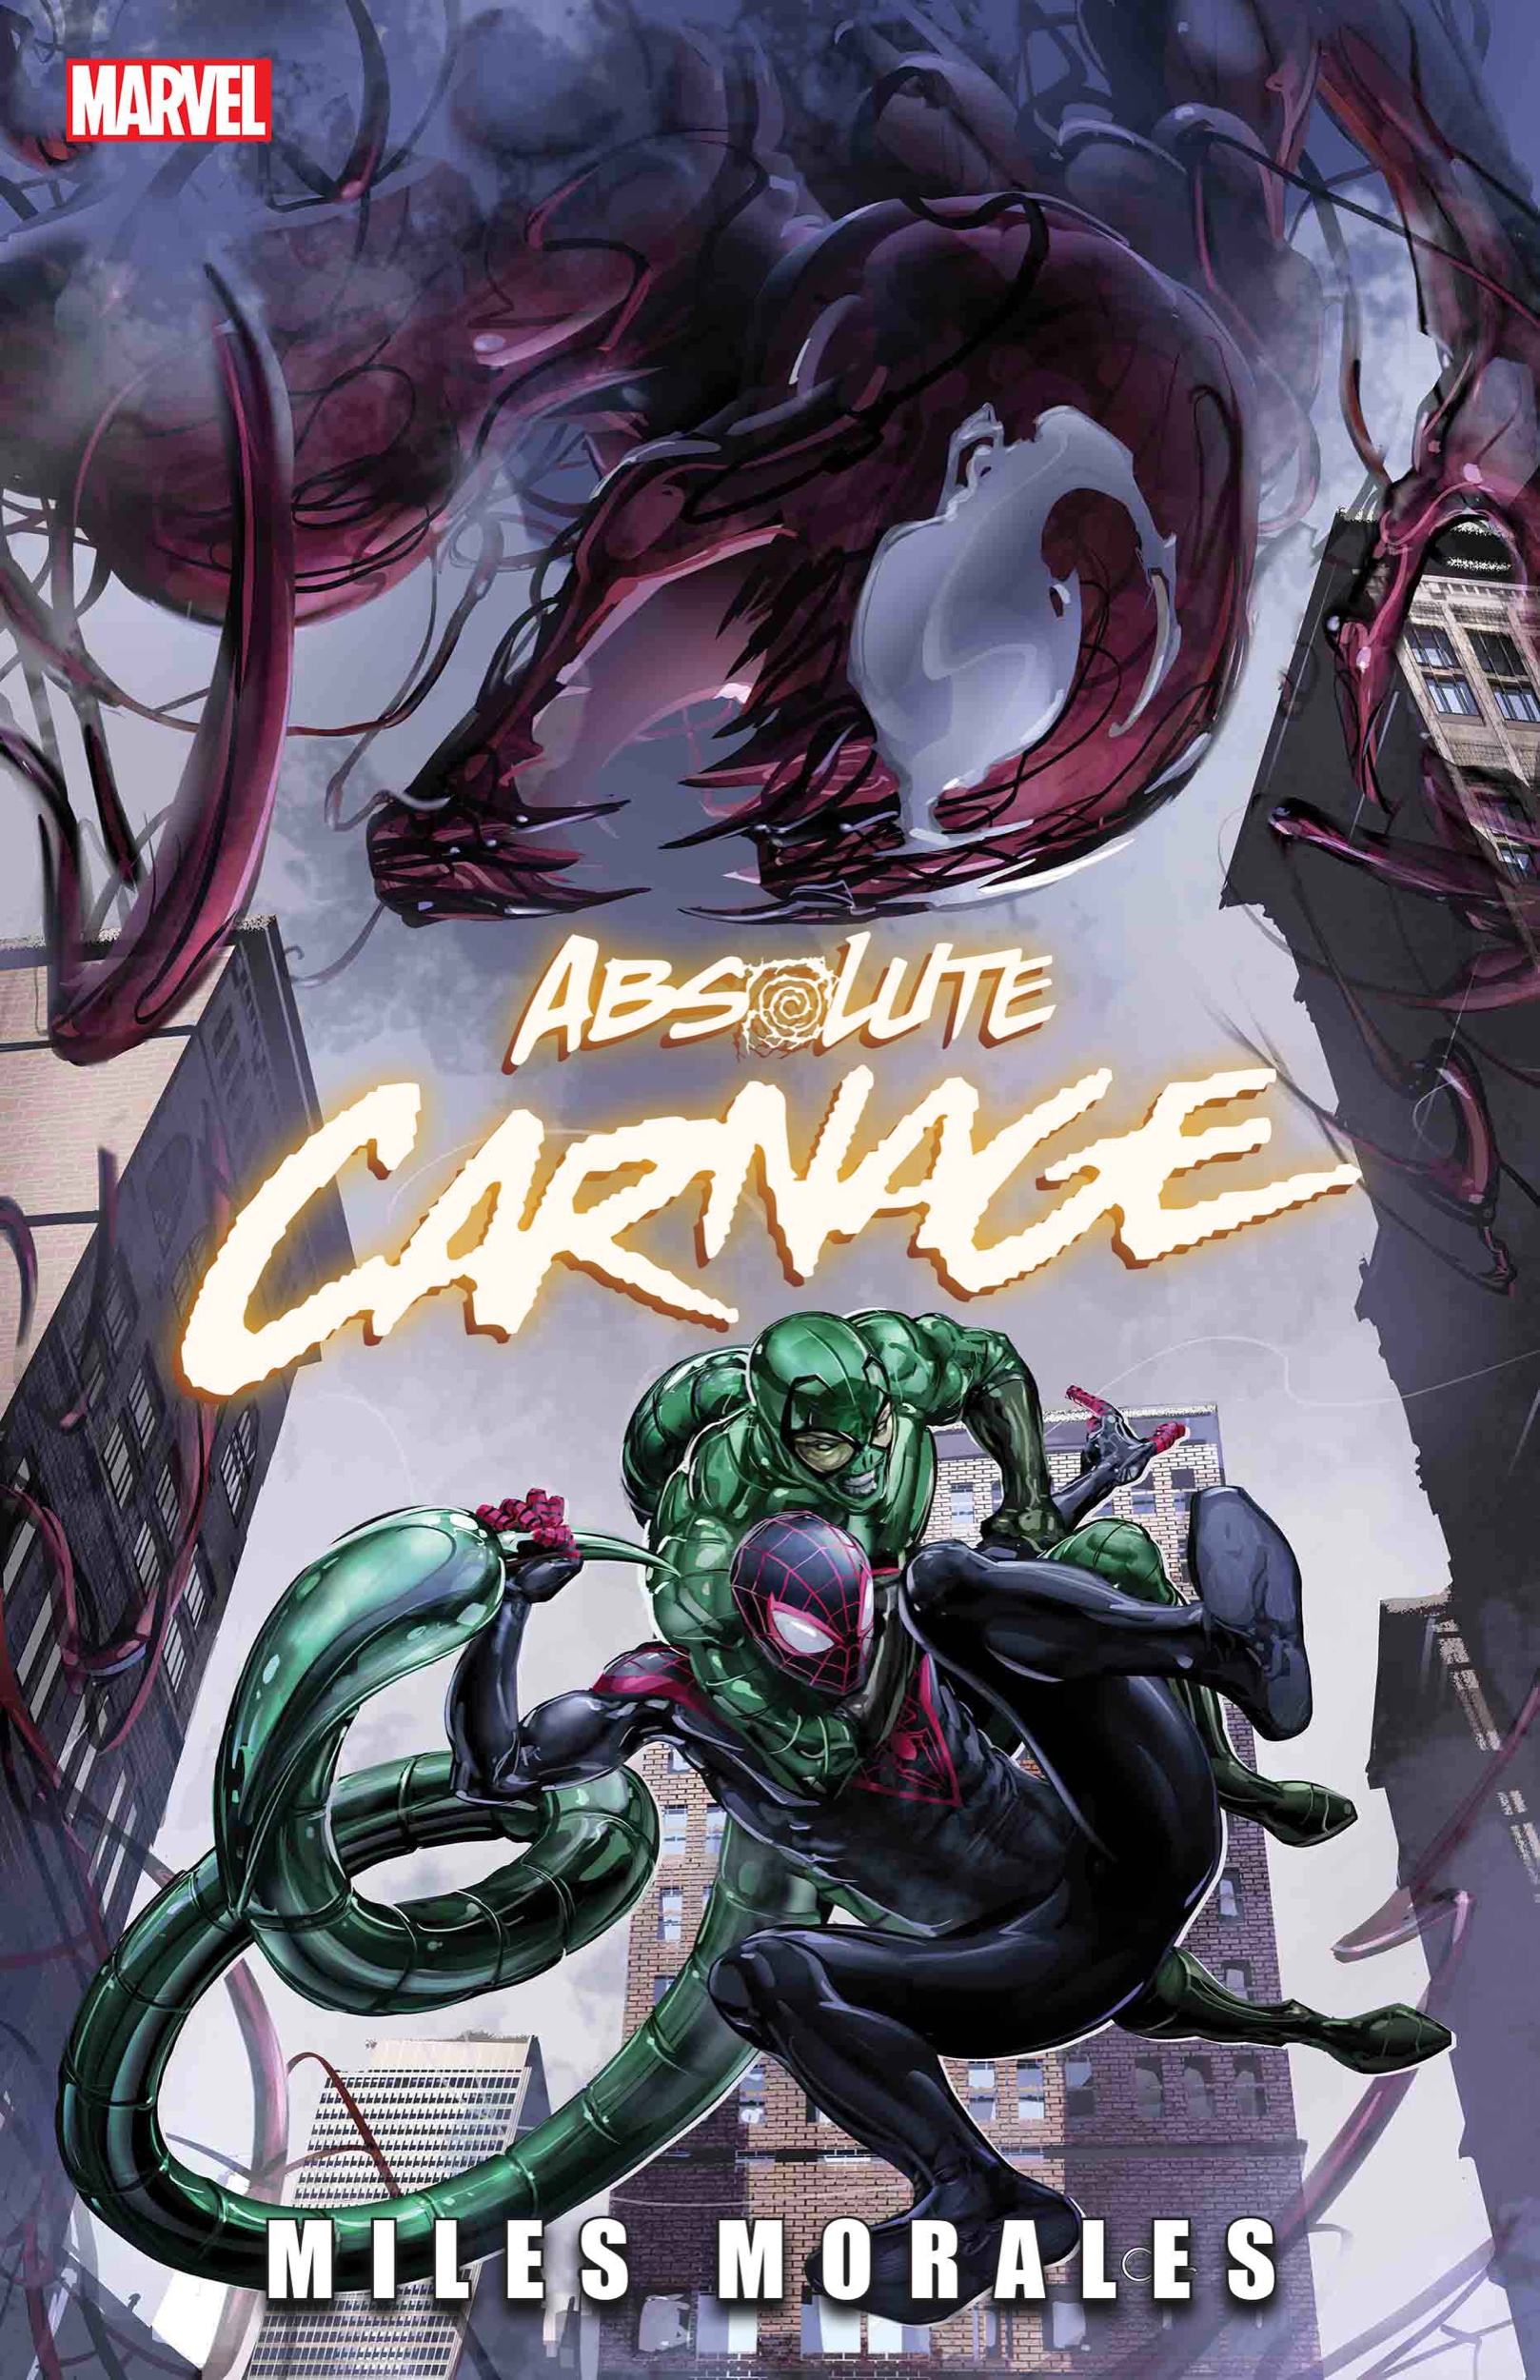 Absolute Carnage: Miles Morales #1 cover